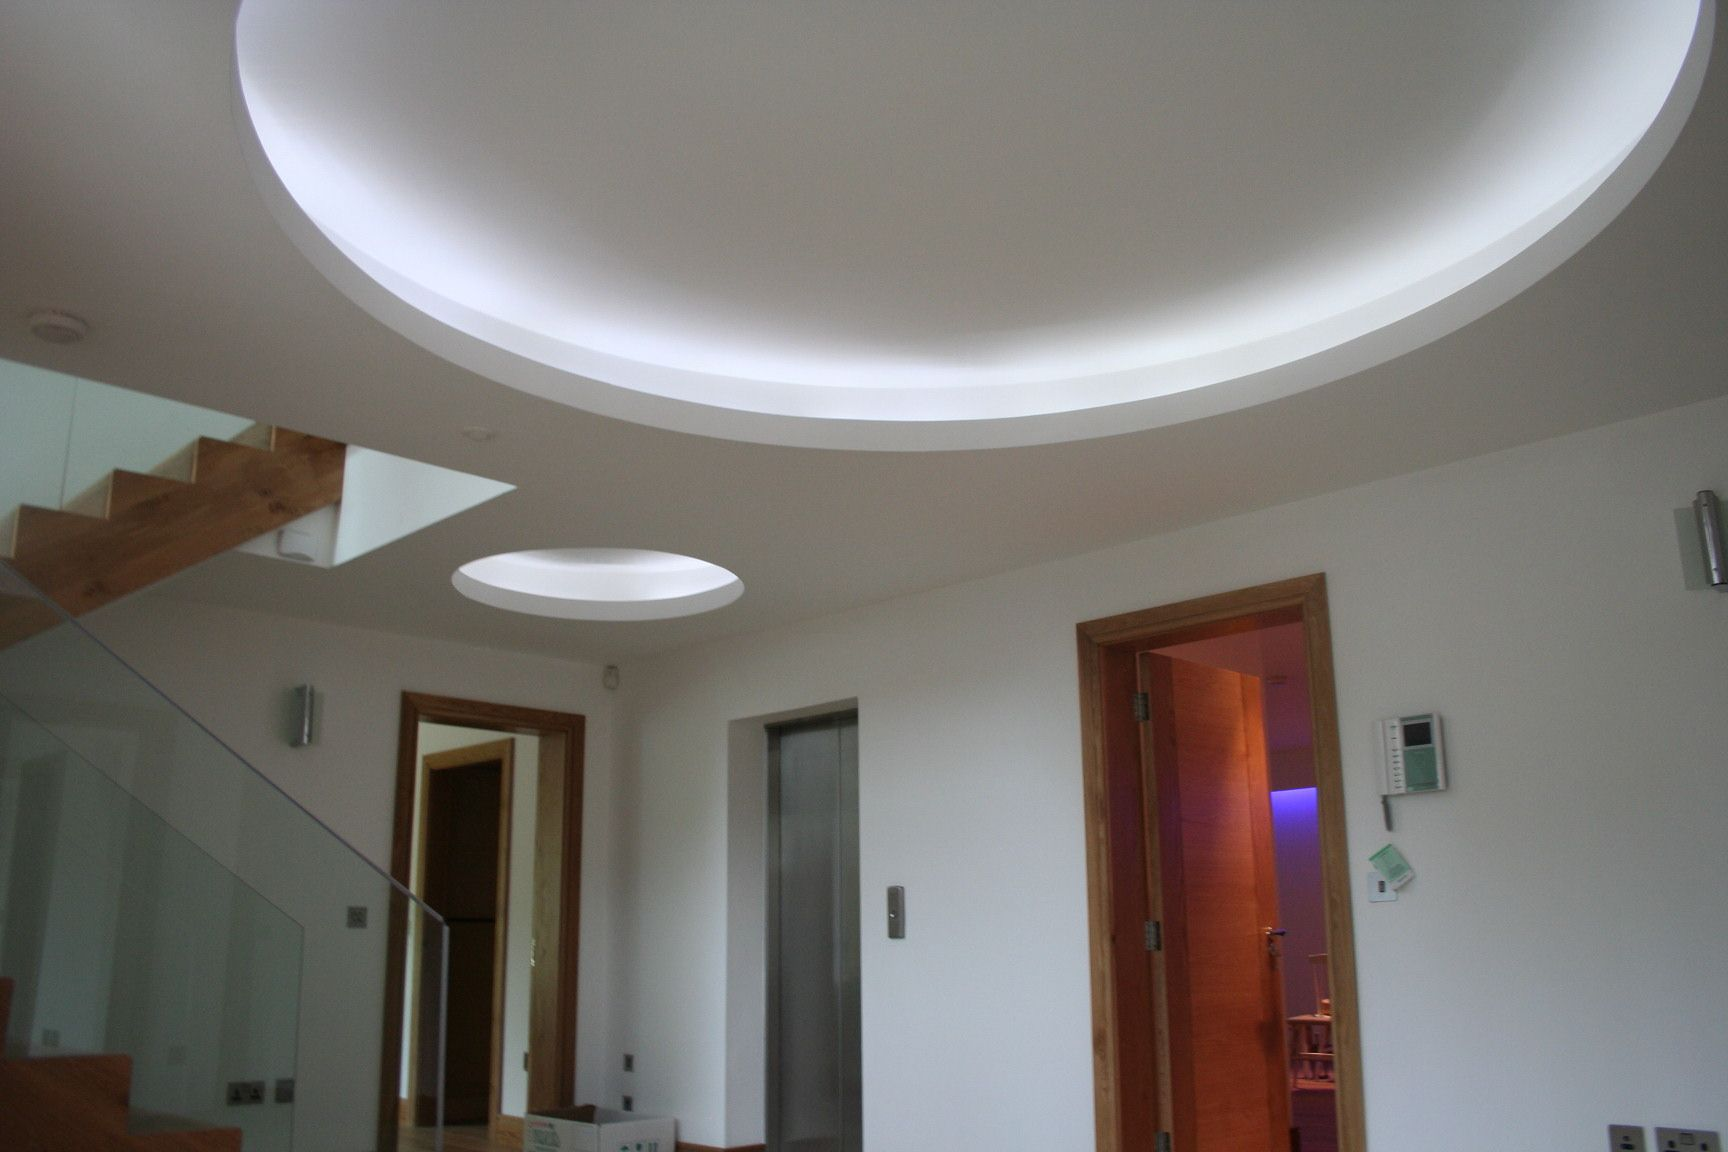 Round Ceiling Lighting With Cove Design Idea | Nl ...